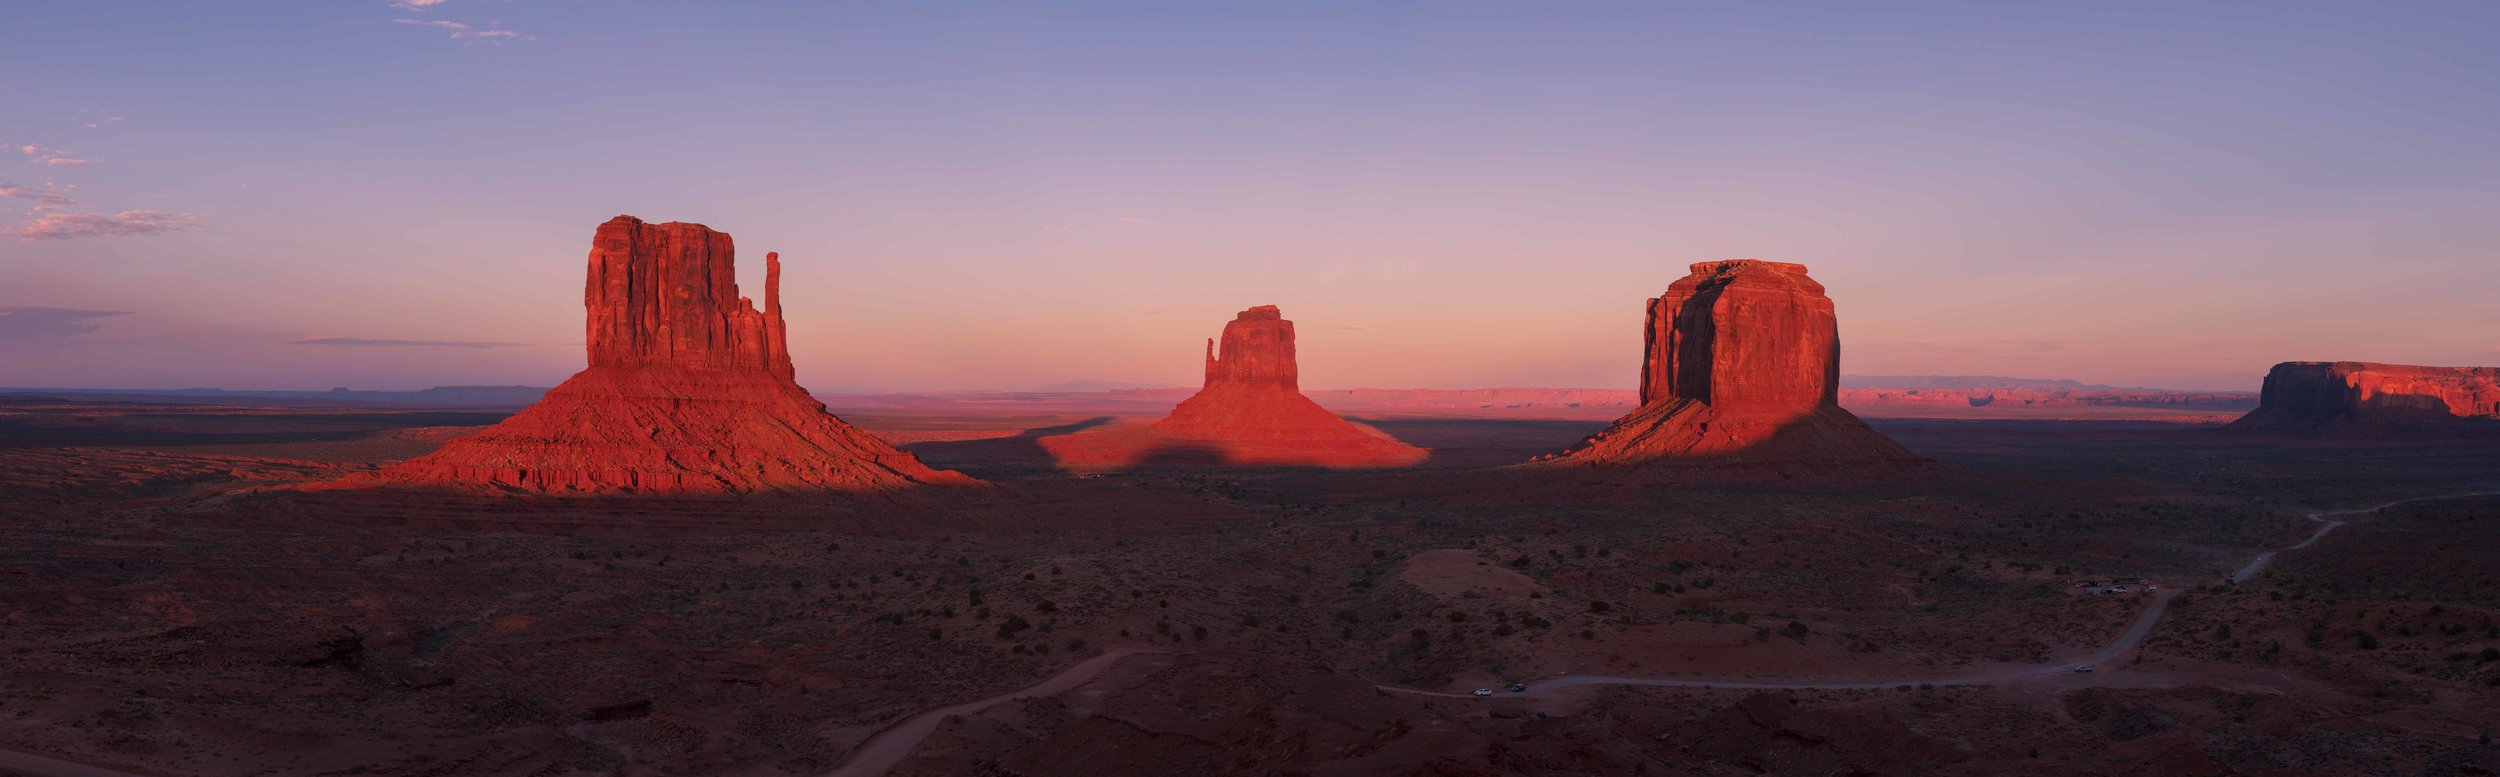 Golden sunset light hitting the famous buttes at Monument Valley